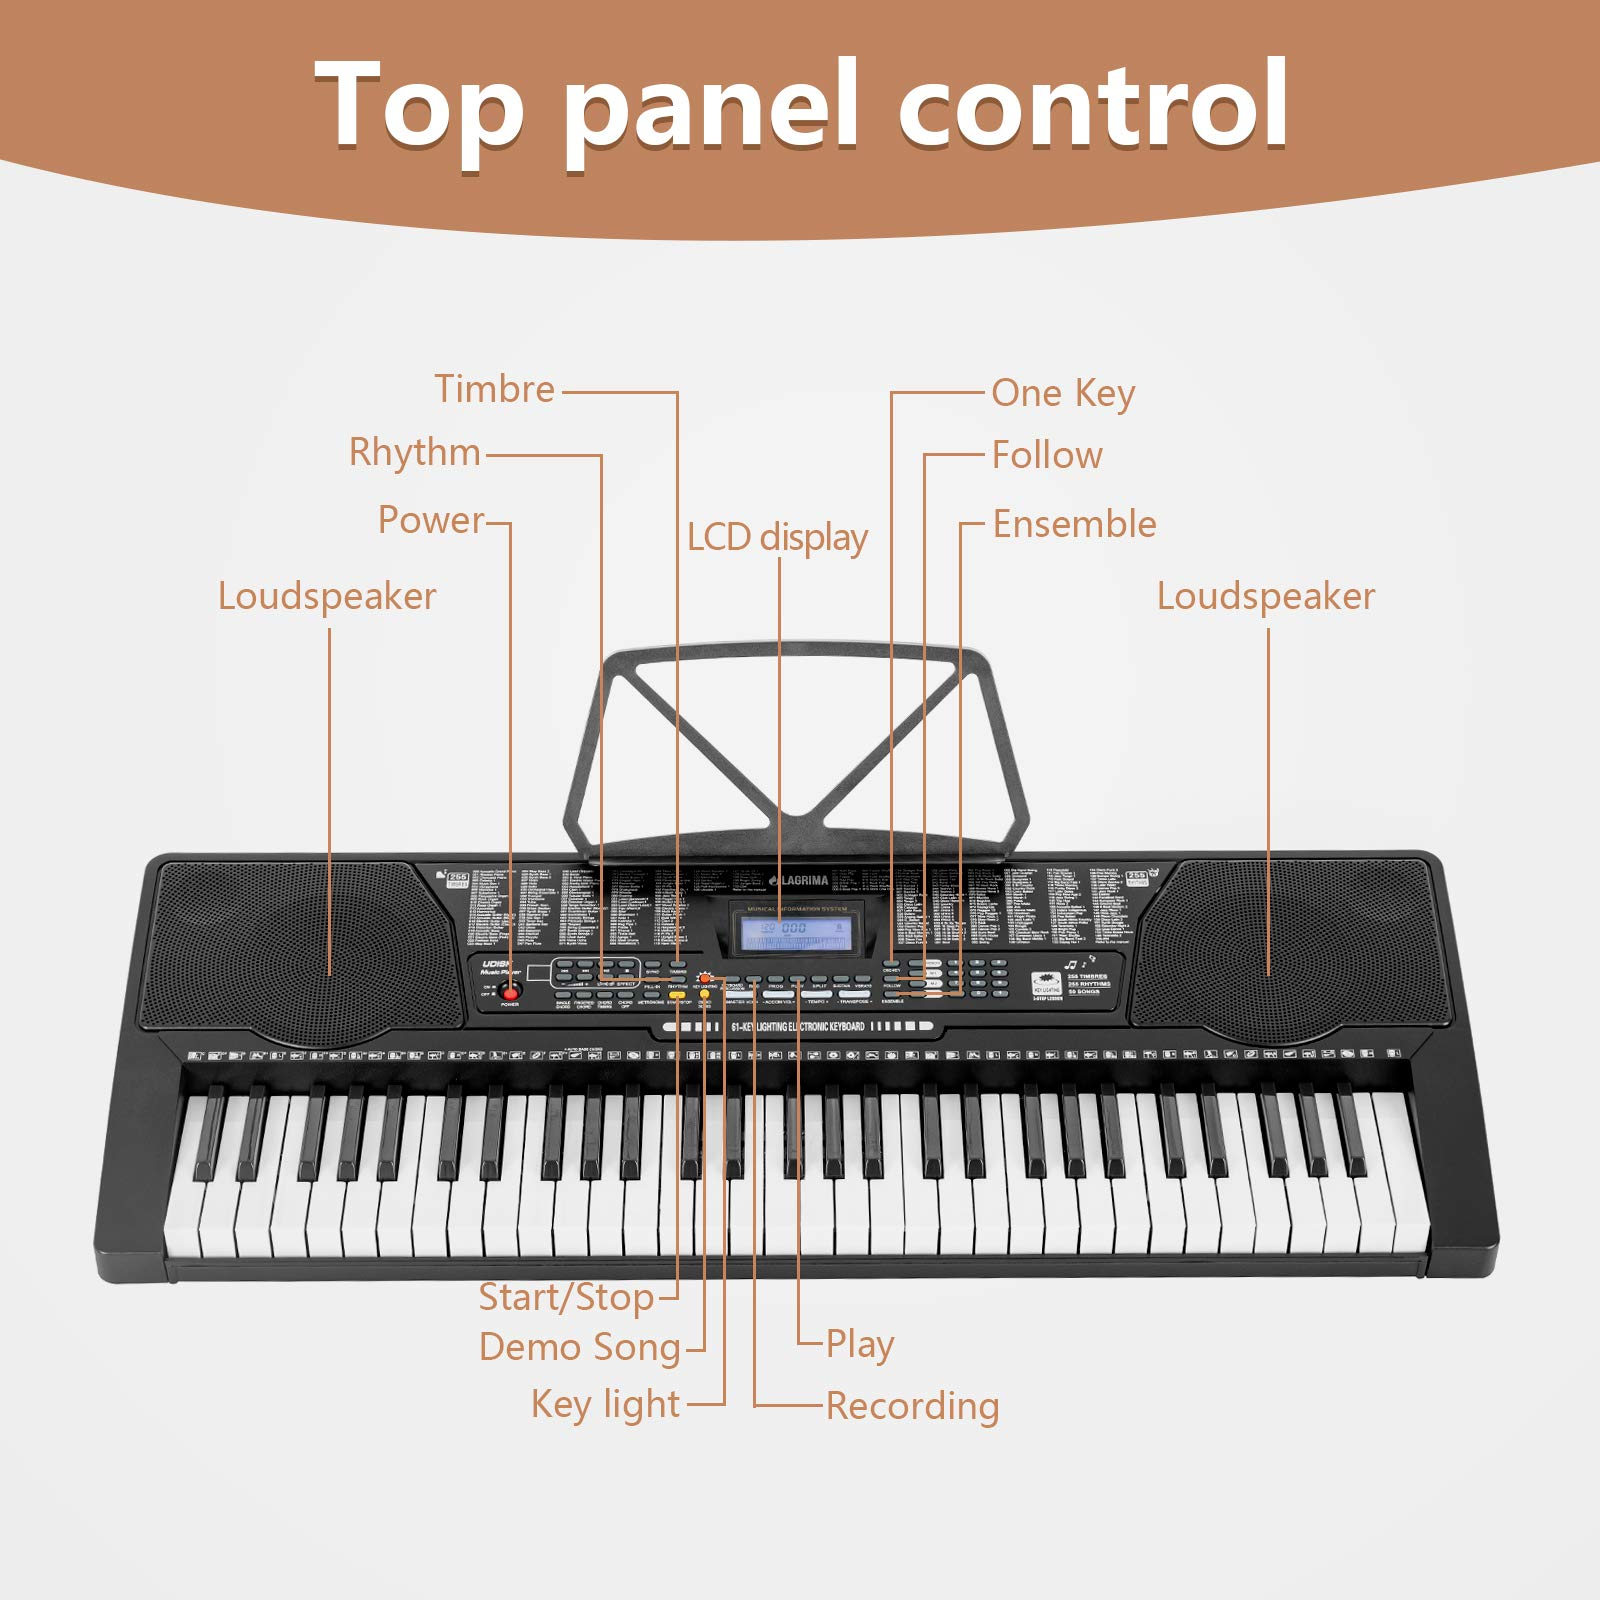 LAGRIMA 61 Key Electric Keyboard Piano w/Light Up Keys for Beginner, Lighted Portable Keyboard w/Music Player Function, Micphone, Power Supply, Music Stand, Black by LAGRIMA (Image #3)